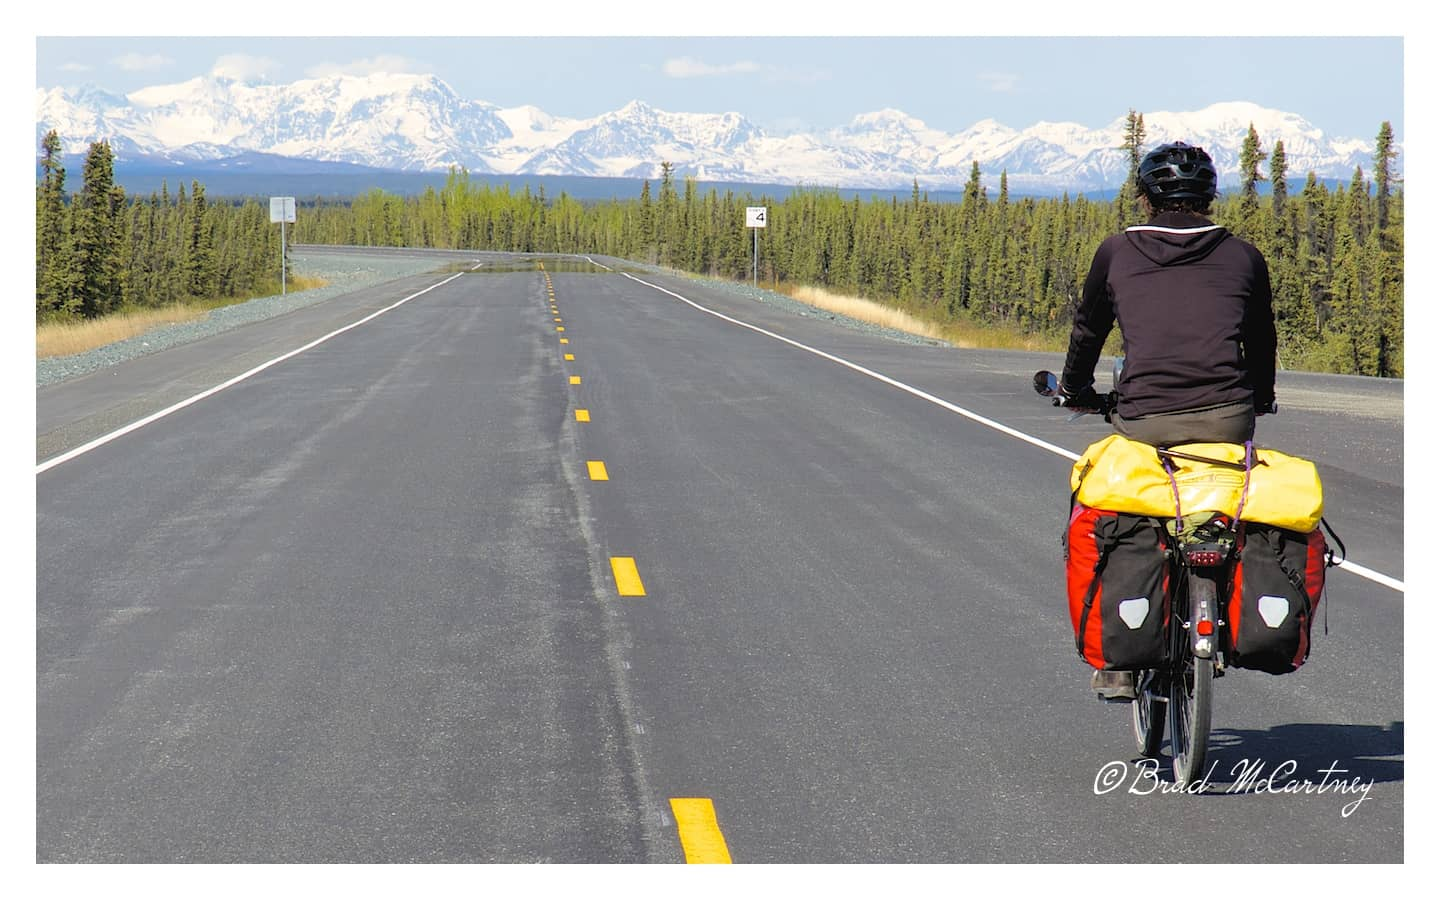 The more remote section of the Richardson Hwy, with little traffic and awesome cycling.